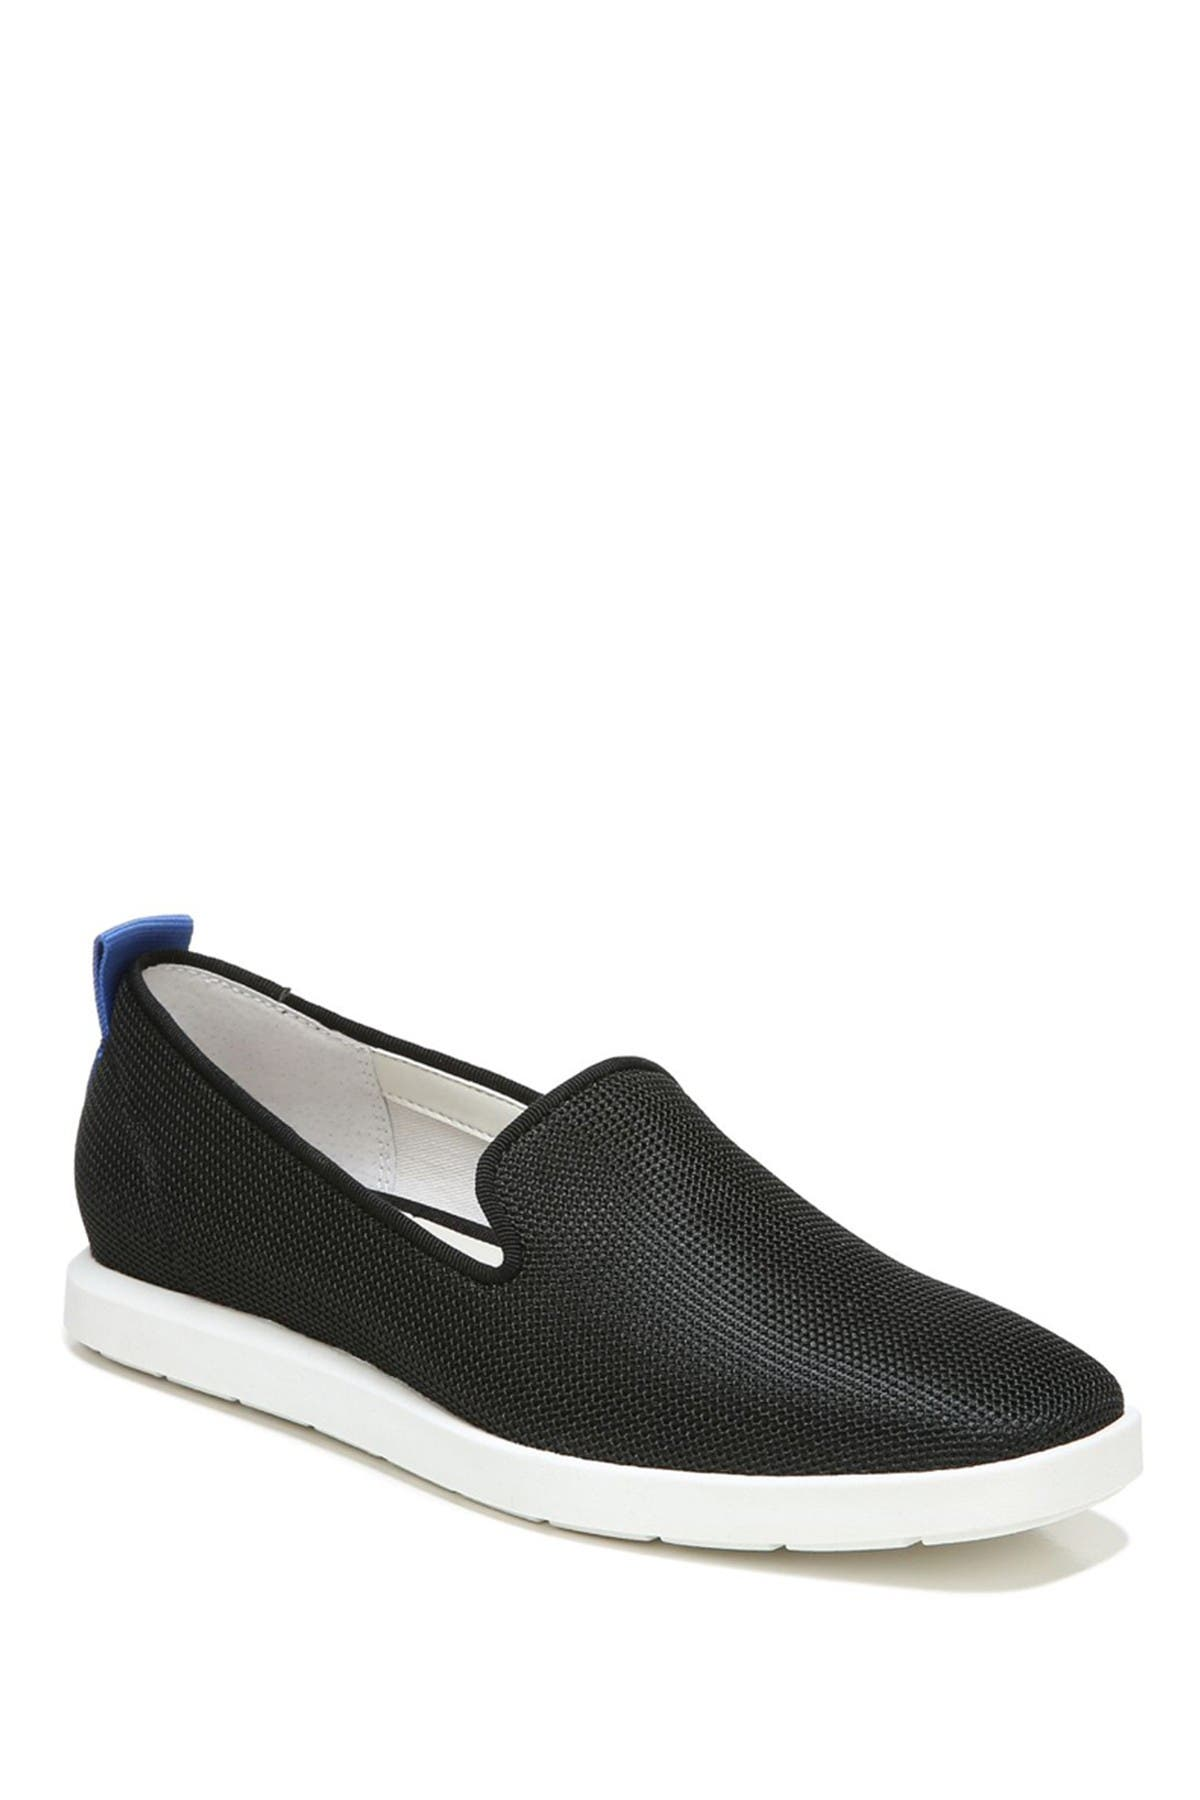 Image of Franco Sarto Boston 3 Slip-On Sneaker